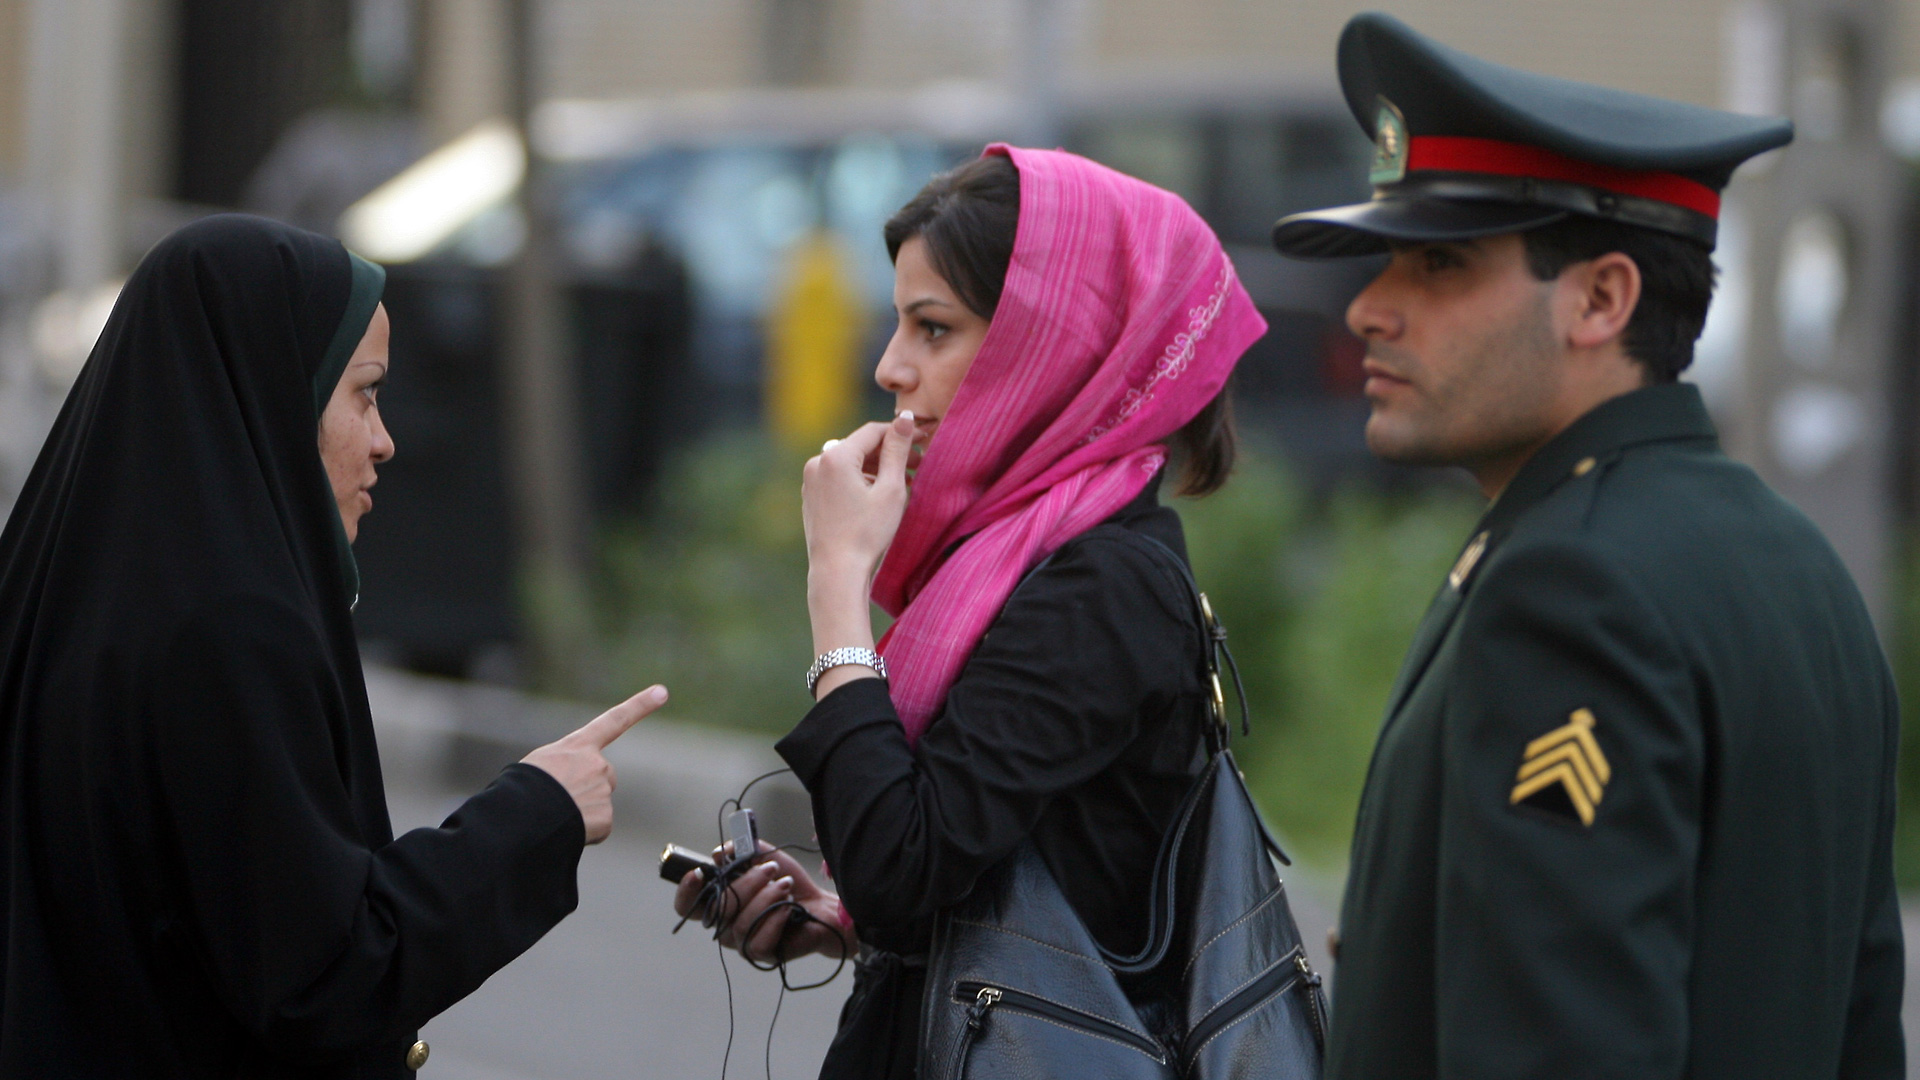 An Iranian policewoman (L) warns a woman about her clothing and hair during a crackdown to enforce Islamic dress code on April 22, 2007 in Tehran, Iran. (Photo credit: Majid Saeedi/Getty Images)